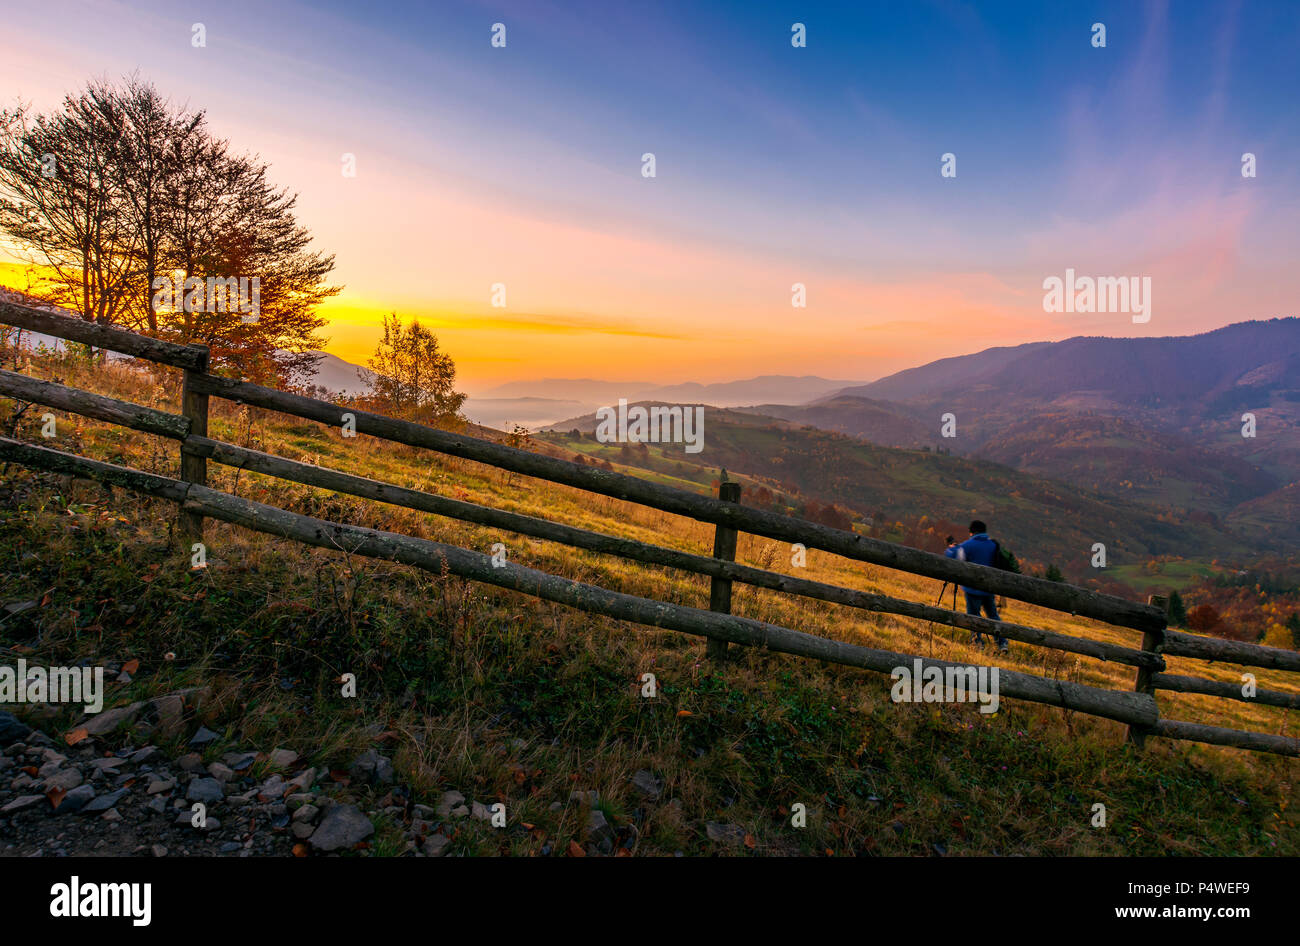 photographer on workshop at dawn in mountains. capturing gorgeous scenery of beautiful landscape with sun rising behind the forested mountain and fogg - Stock Image